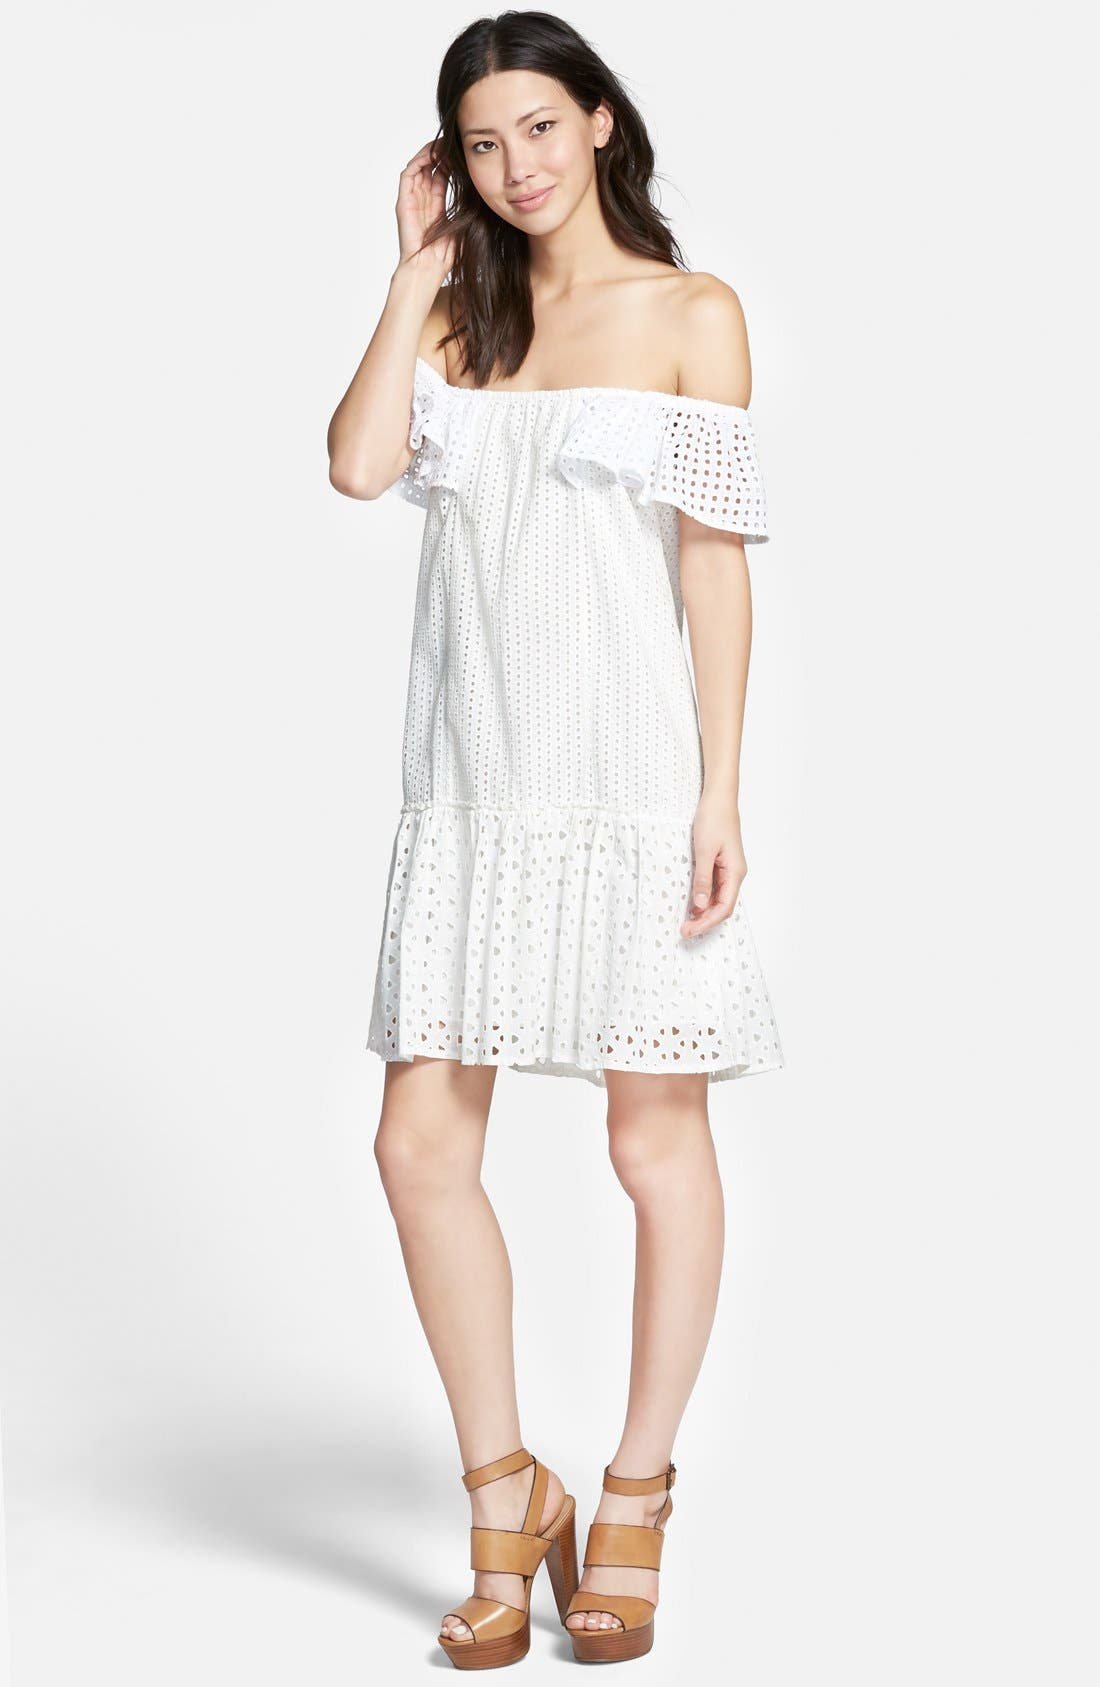 REBECCA MINKOFF 'Celestine' Off the Shoulder Dress, Main, color, 100